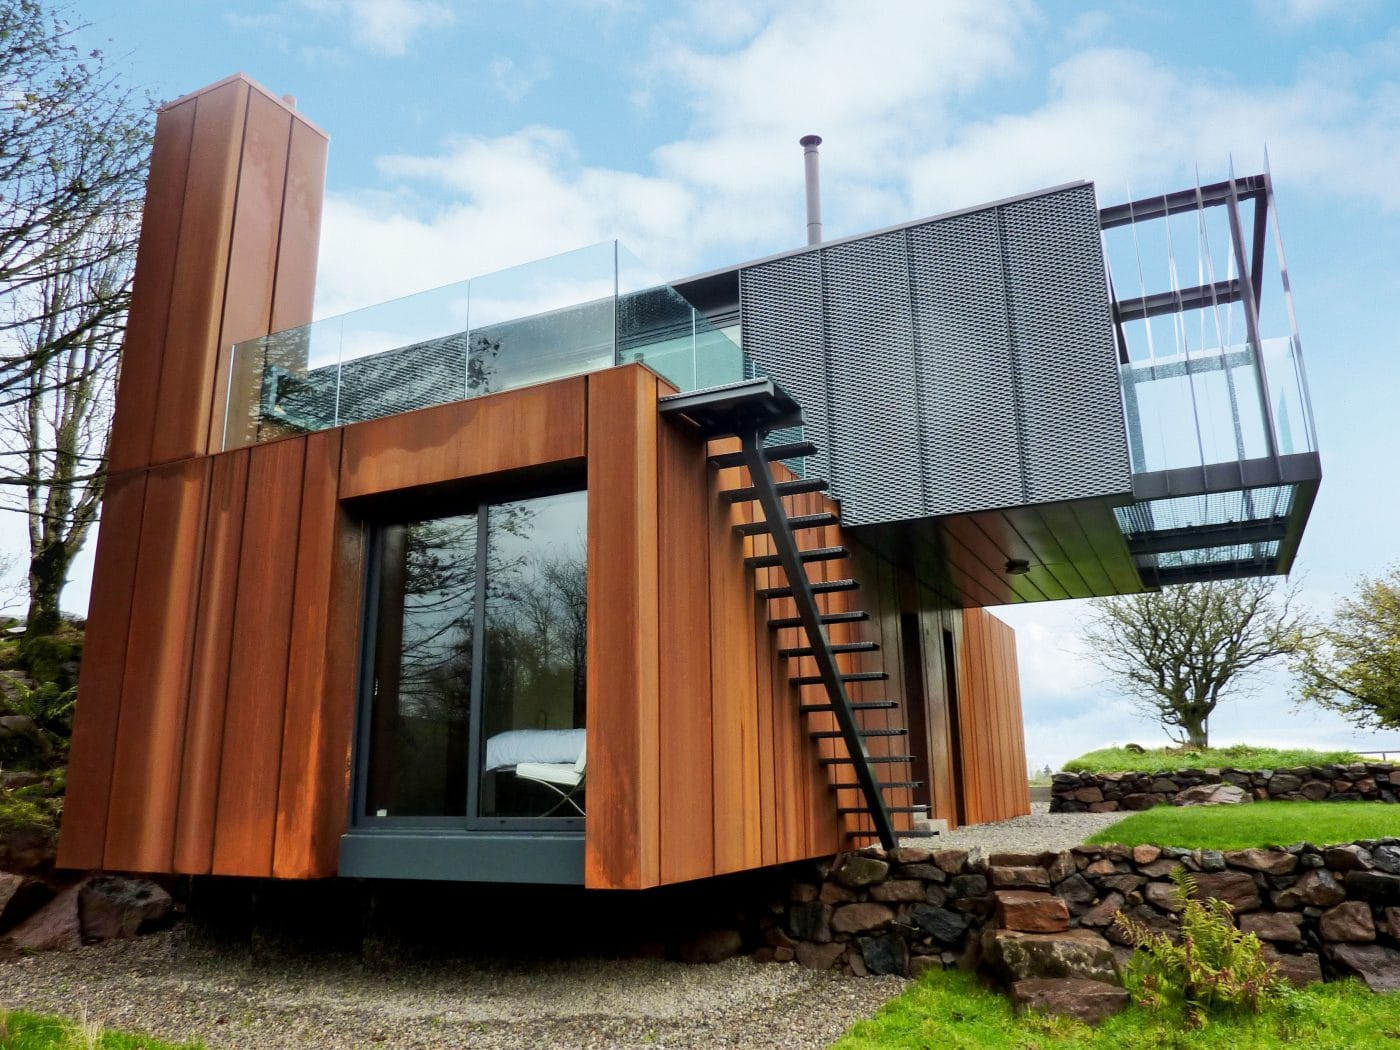 Grand designs shipping container home by patrick bradley for House structure design